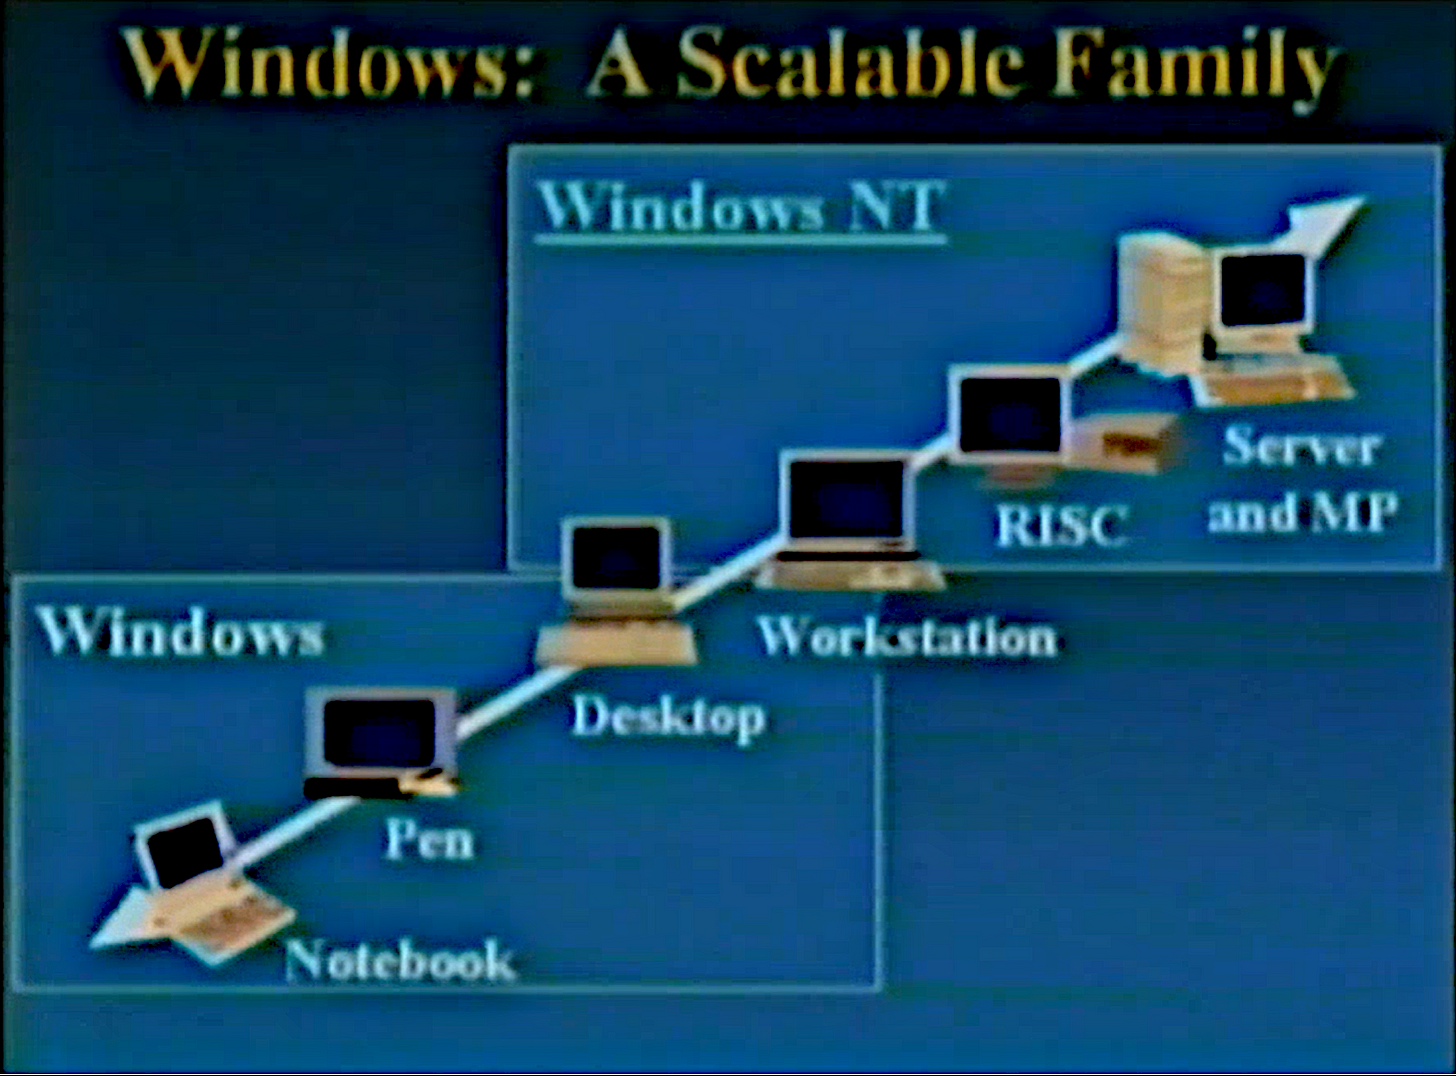 Windows: A Scalable Family